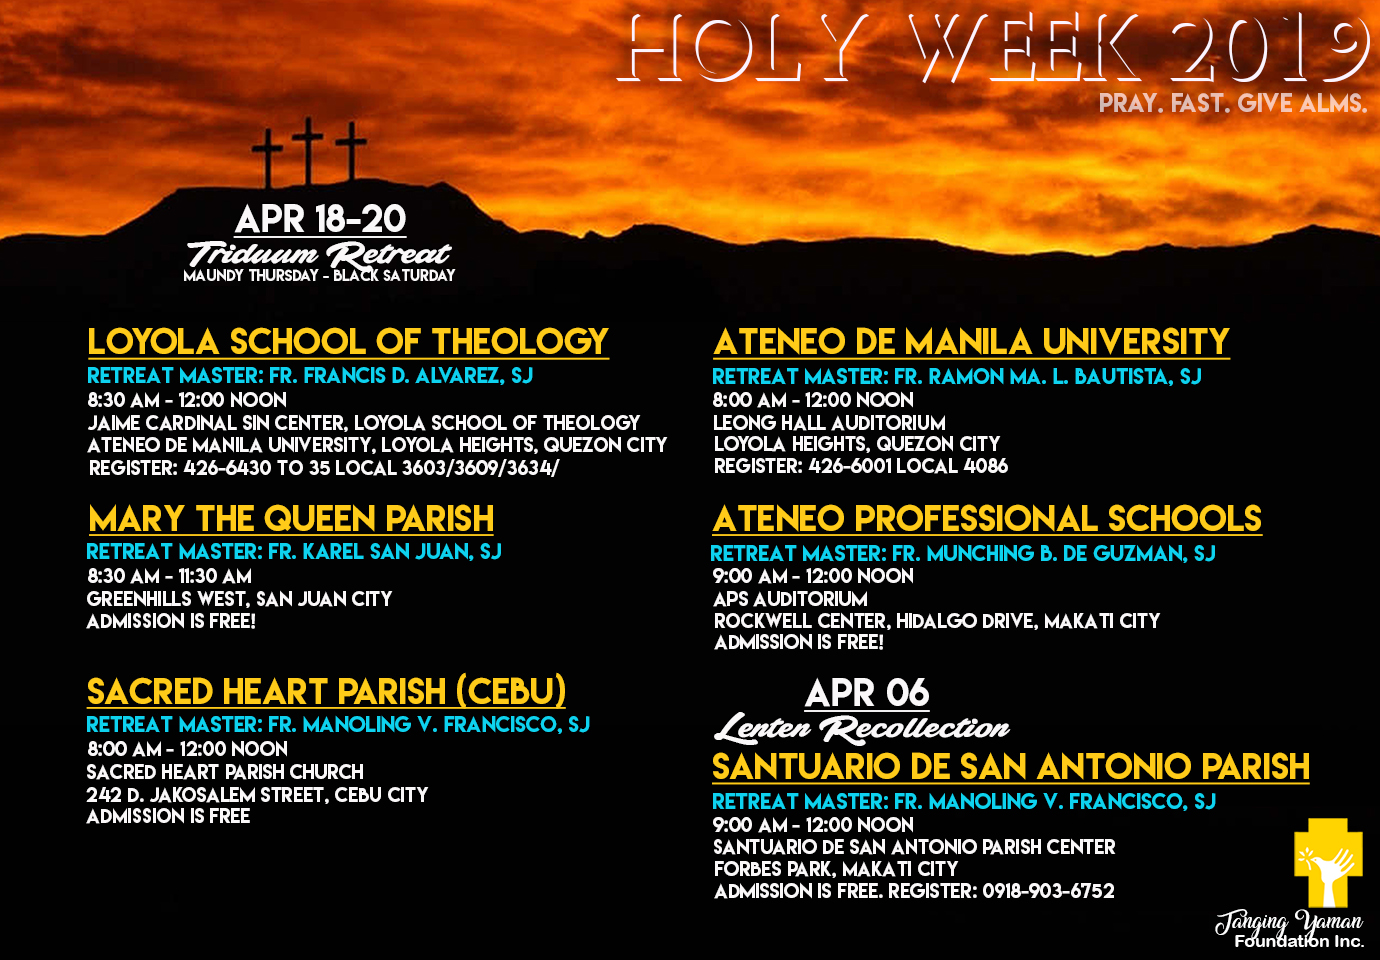 HolyWeek_2019_for_website.jpg